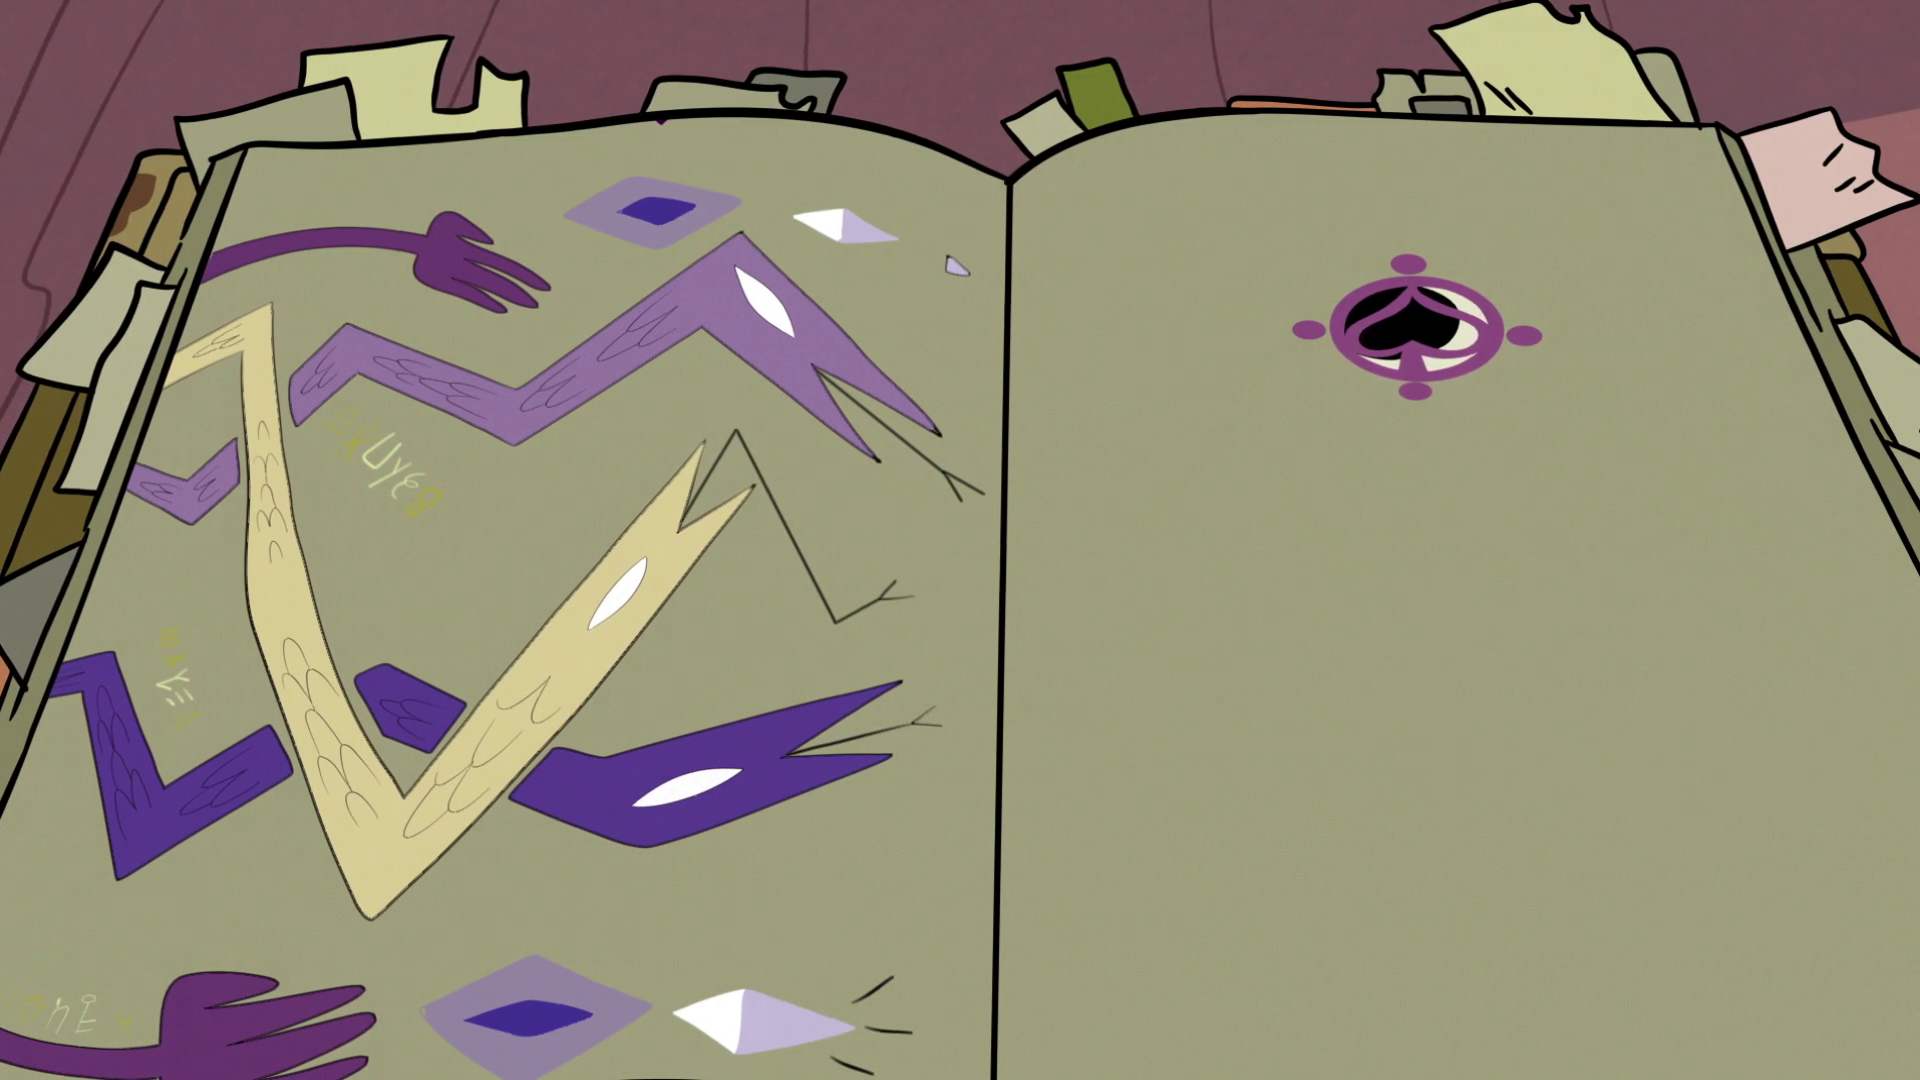 Image - S2E25 Star's book of spells opened up to Eclipsa's